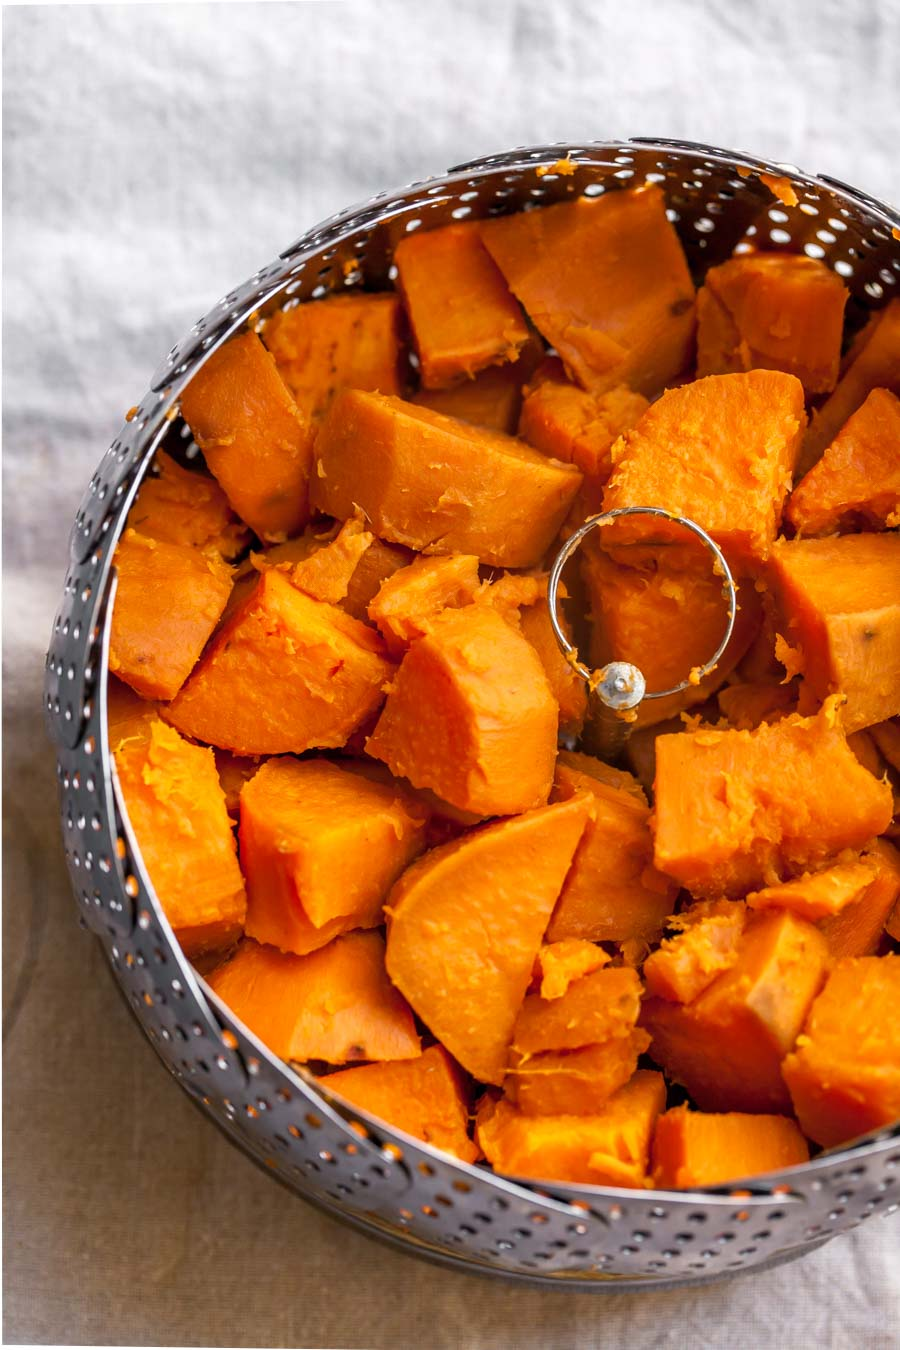 Cubed Steamed Sweet Potatoes on the Stove